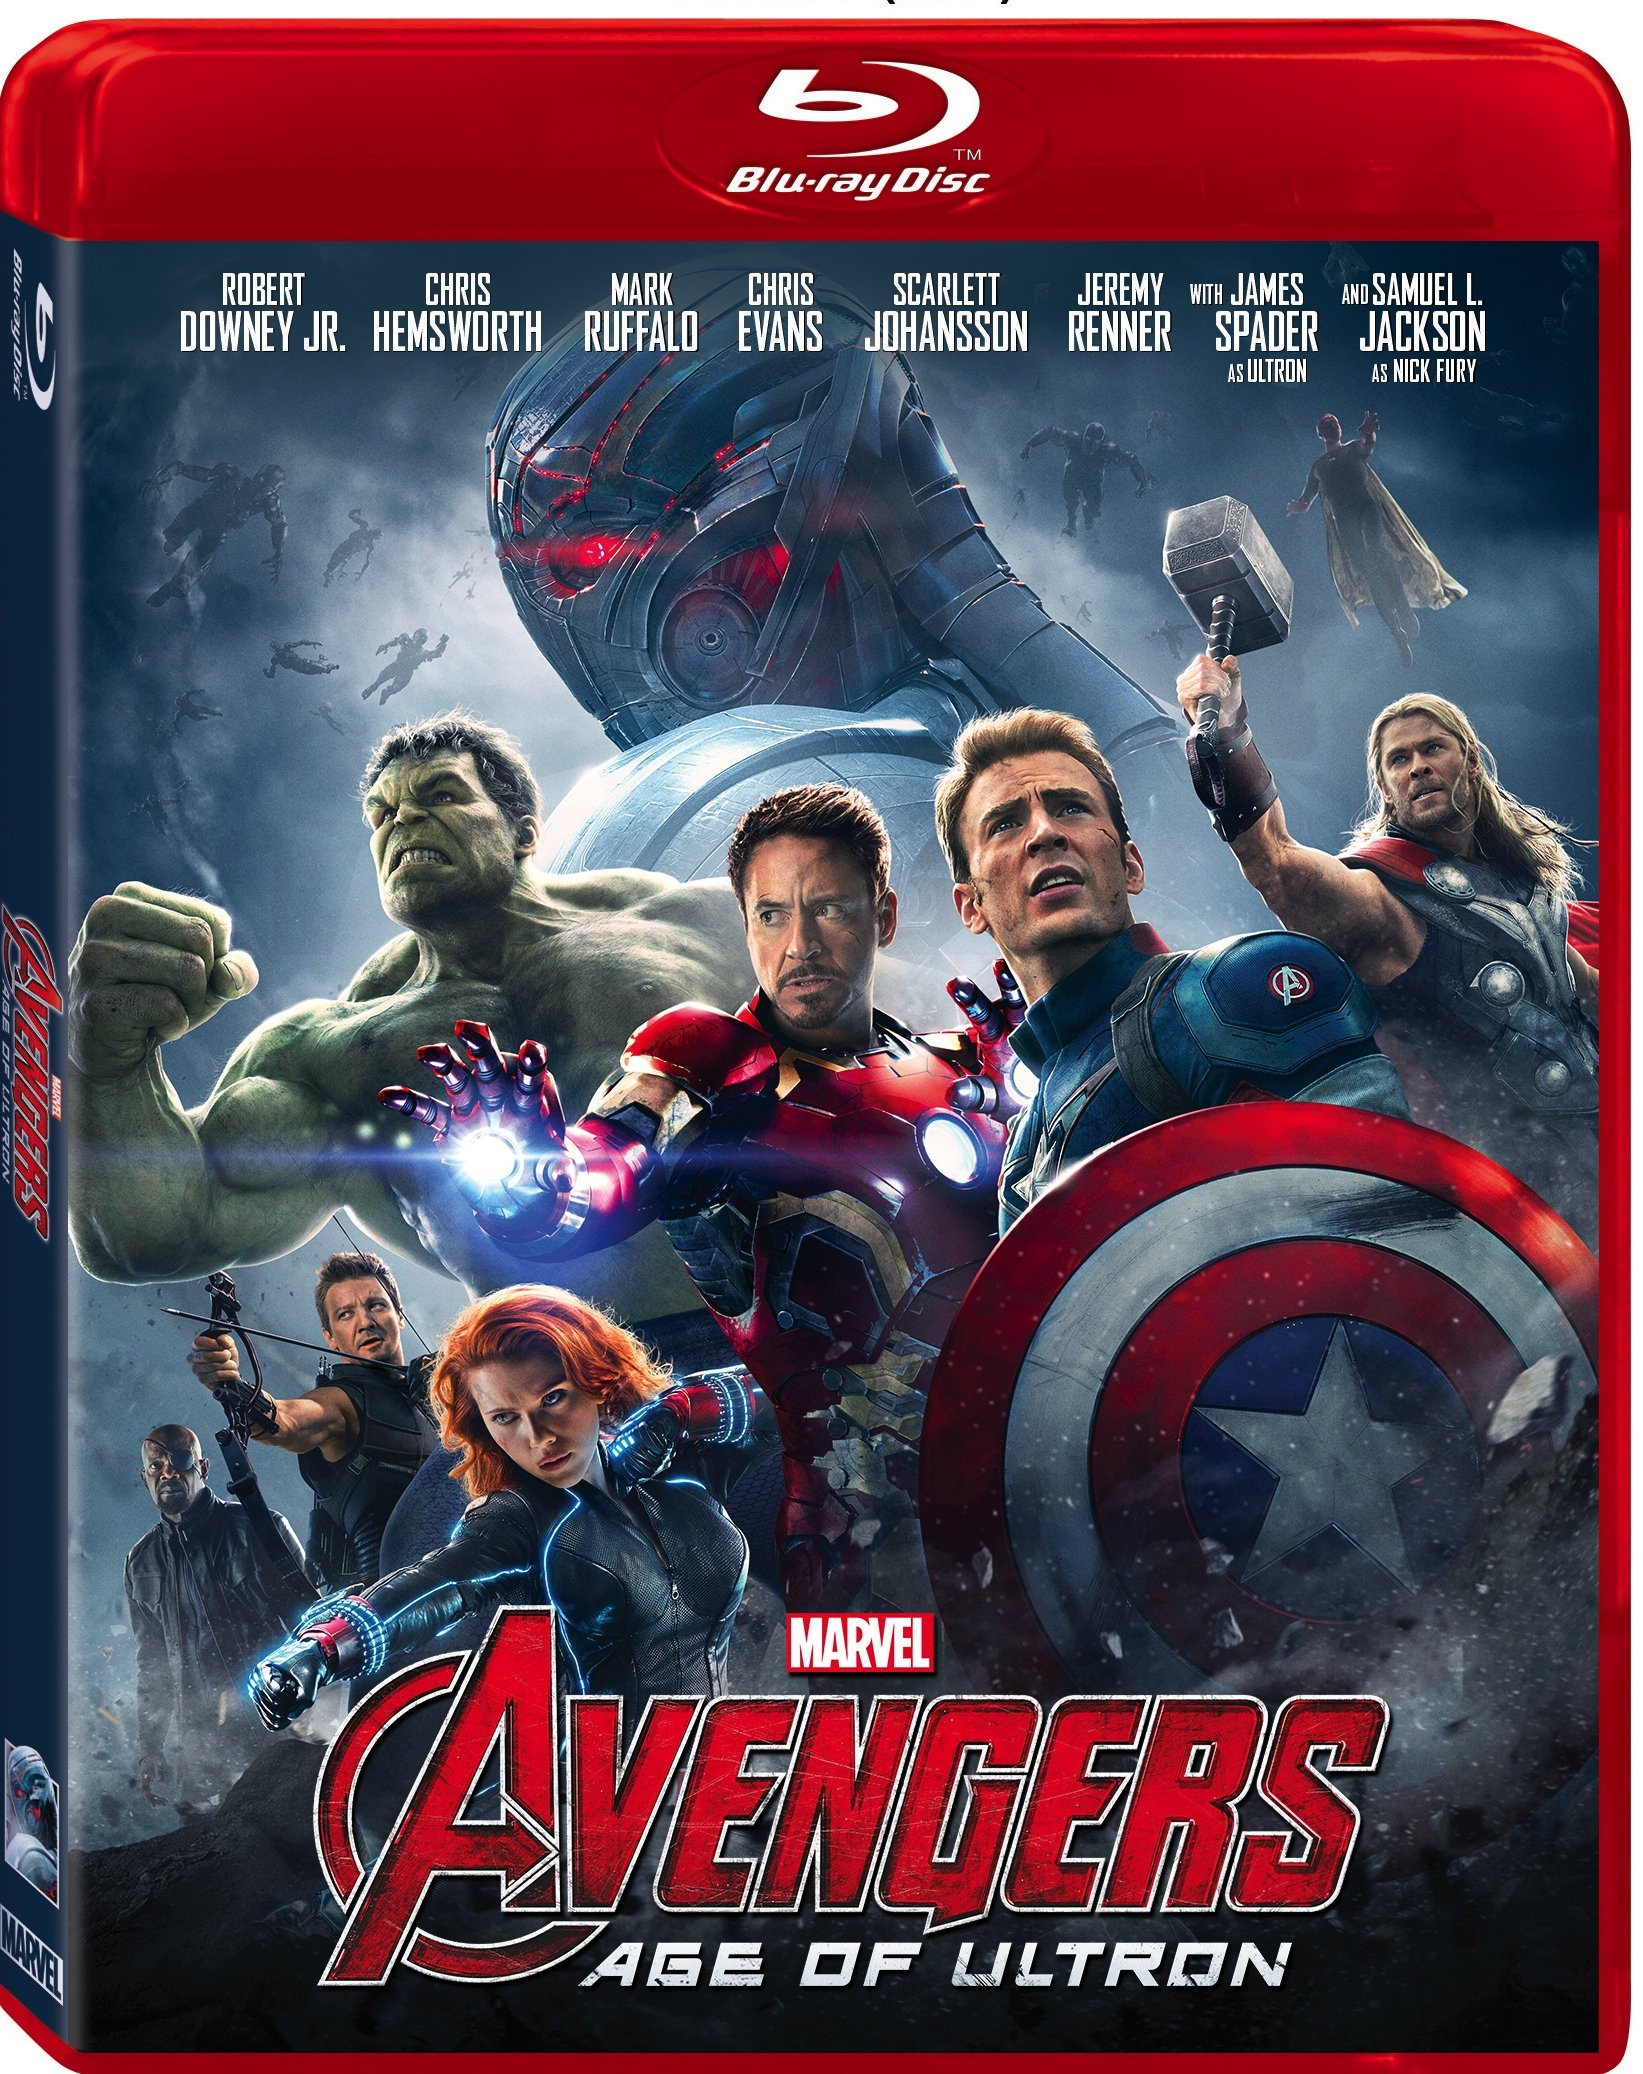 Avengers Age of Ultron Blu-ray Review